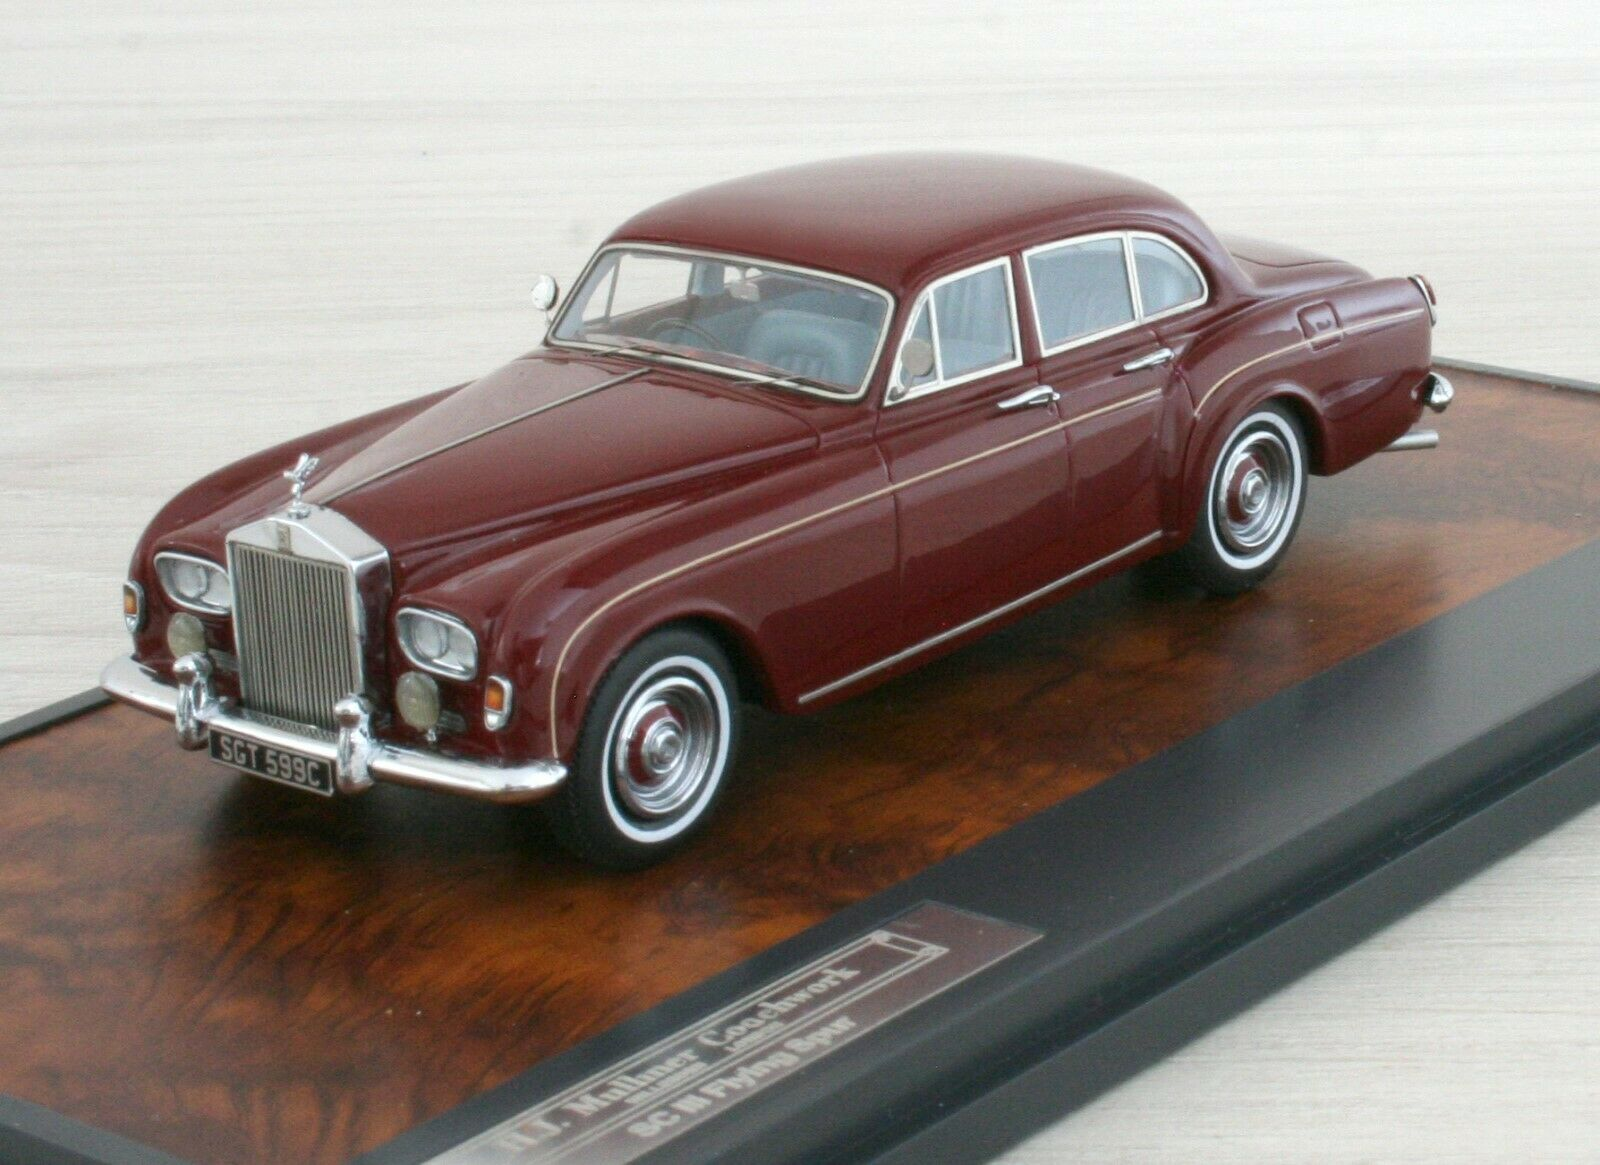 ROLLS ROYCE SC III Mulliner Flying Spur 1965 - MATRIX MX11705-082 - 1 43